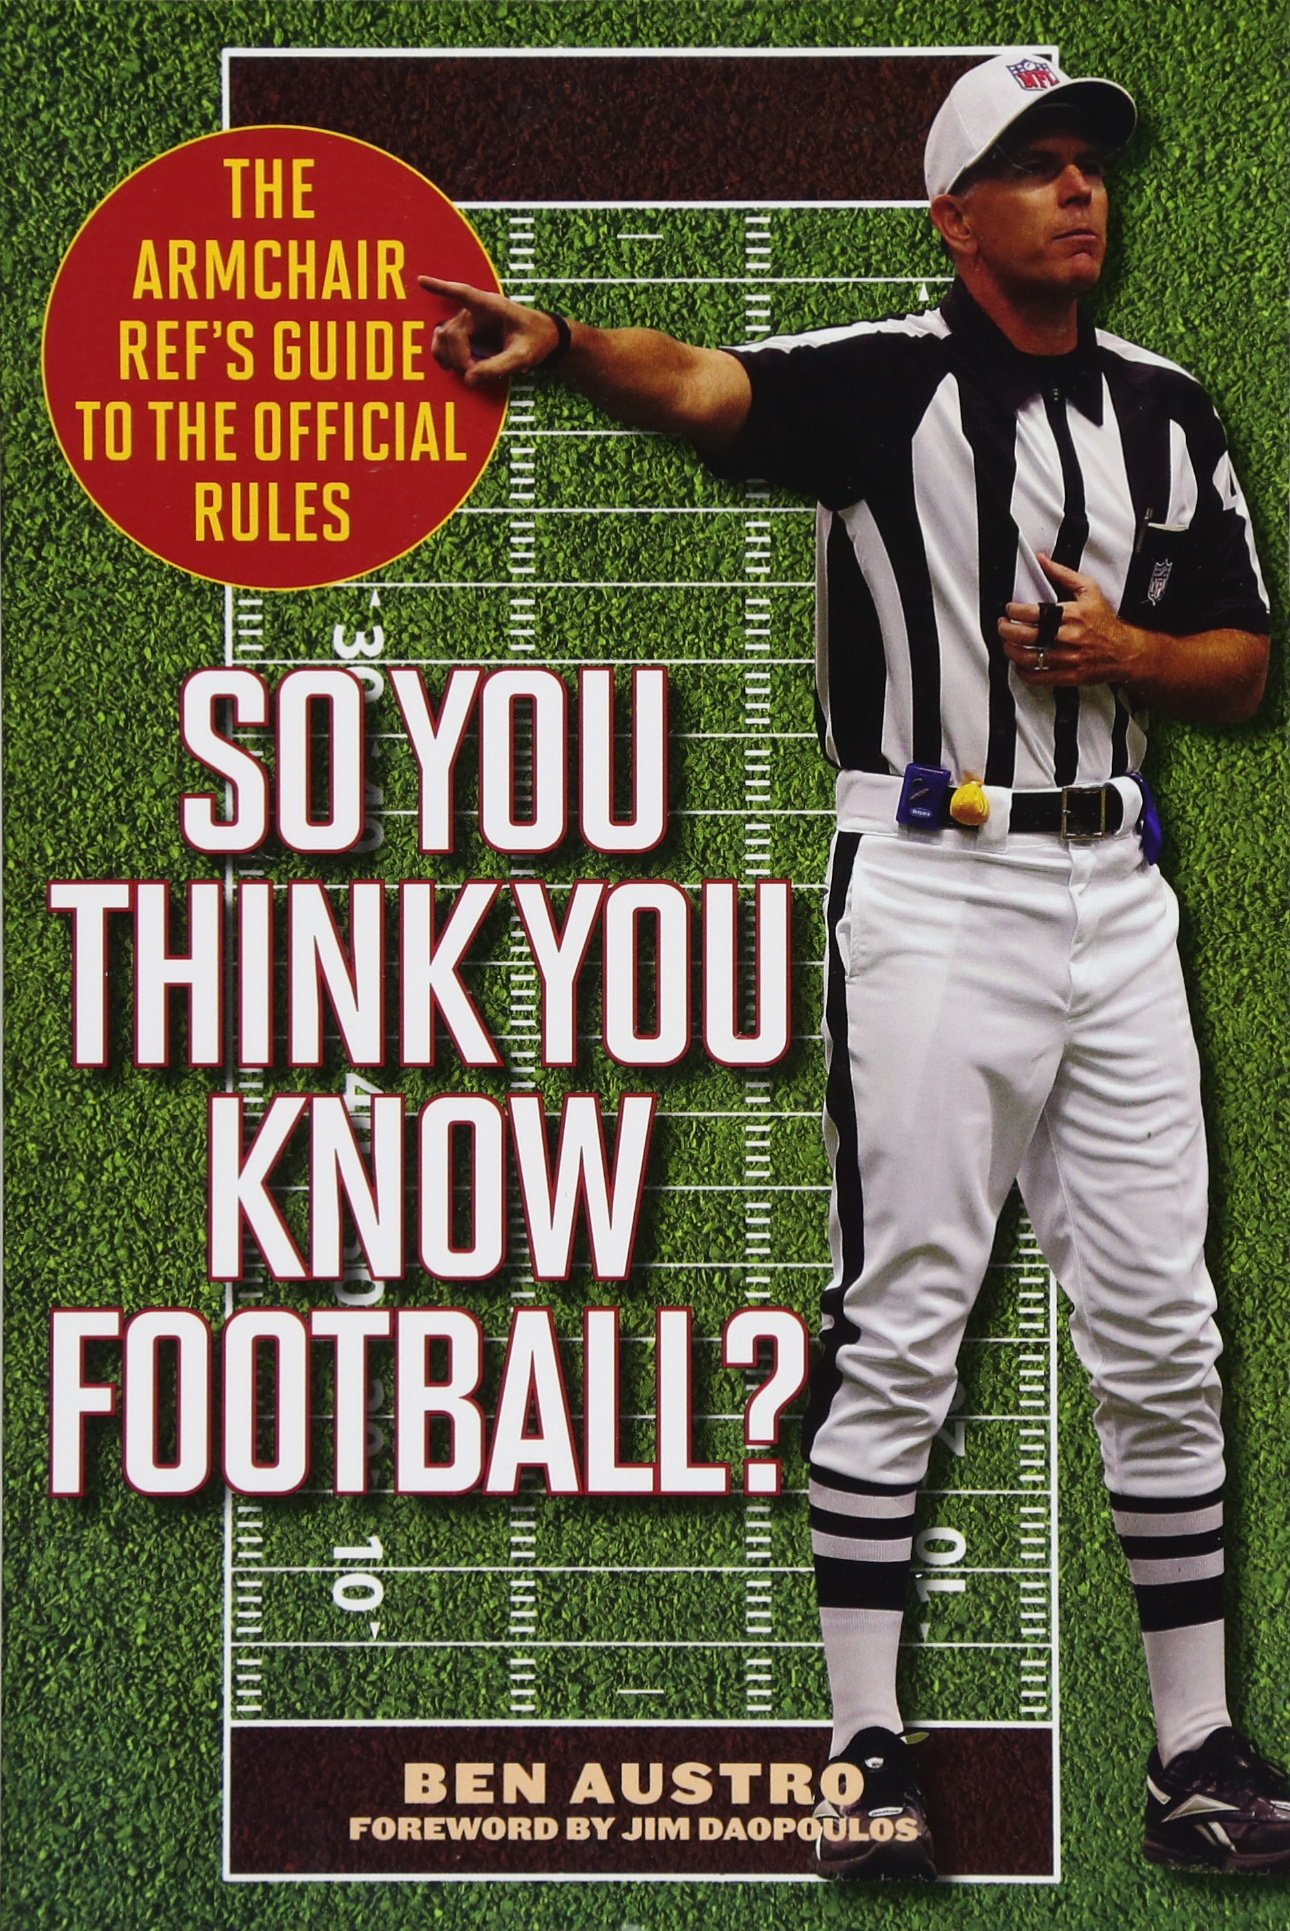 So You Think You Know Football?: The Armchair Ref's Guide to the Official Rules